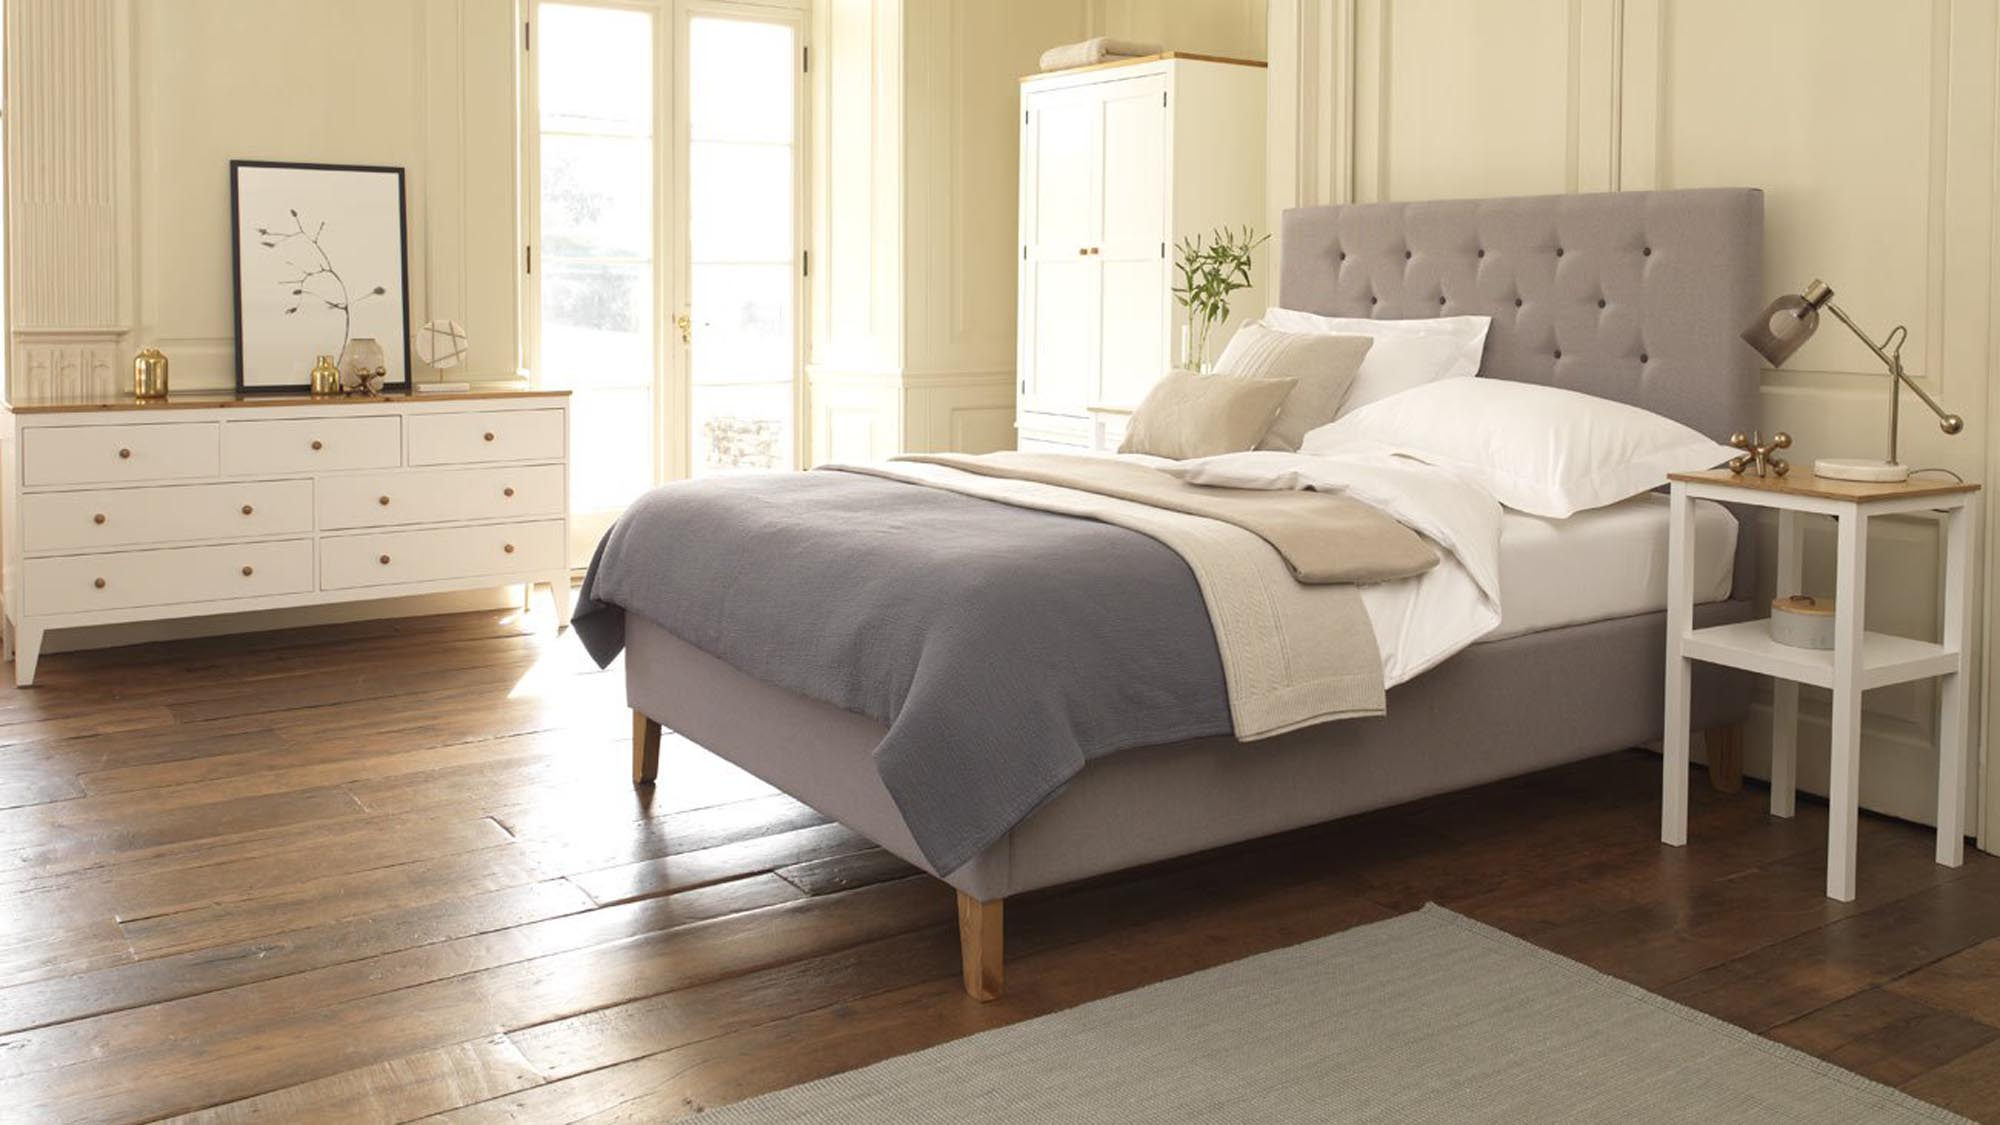 Best beds 2017 our pick of the best single double and - All in one double bed ...